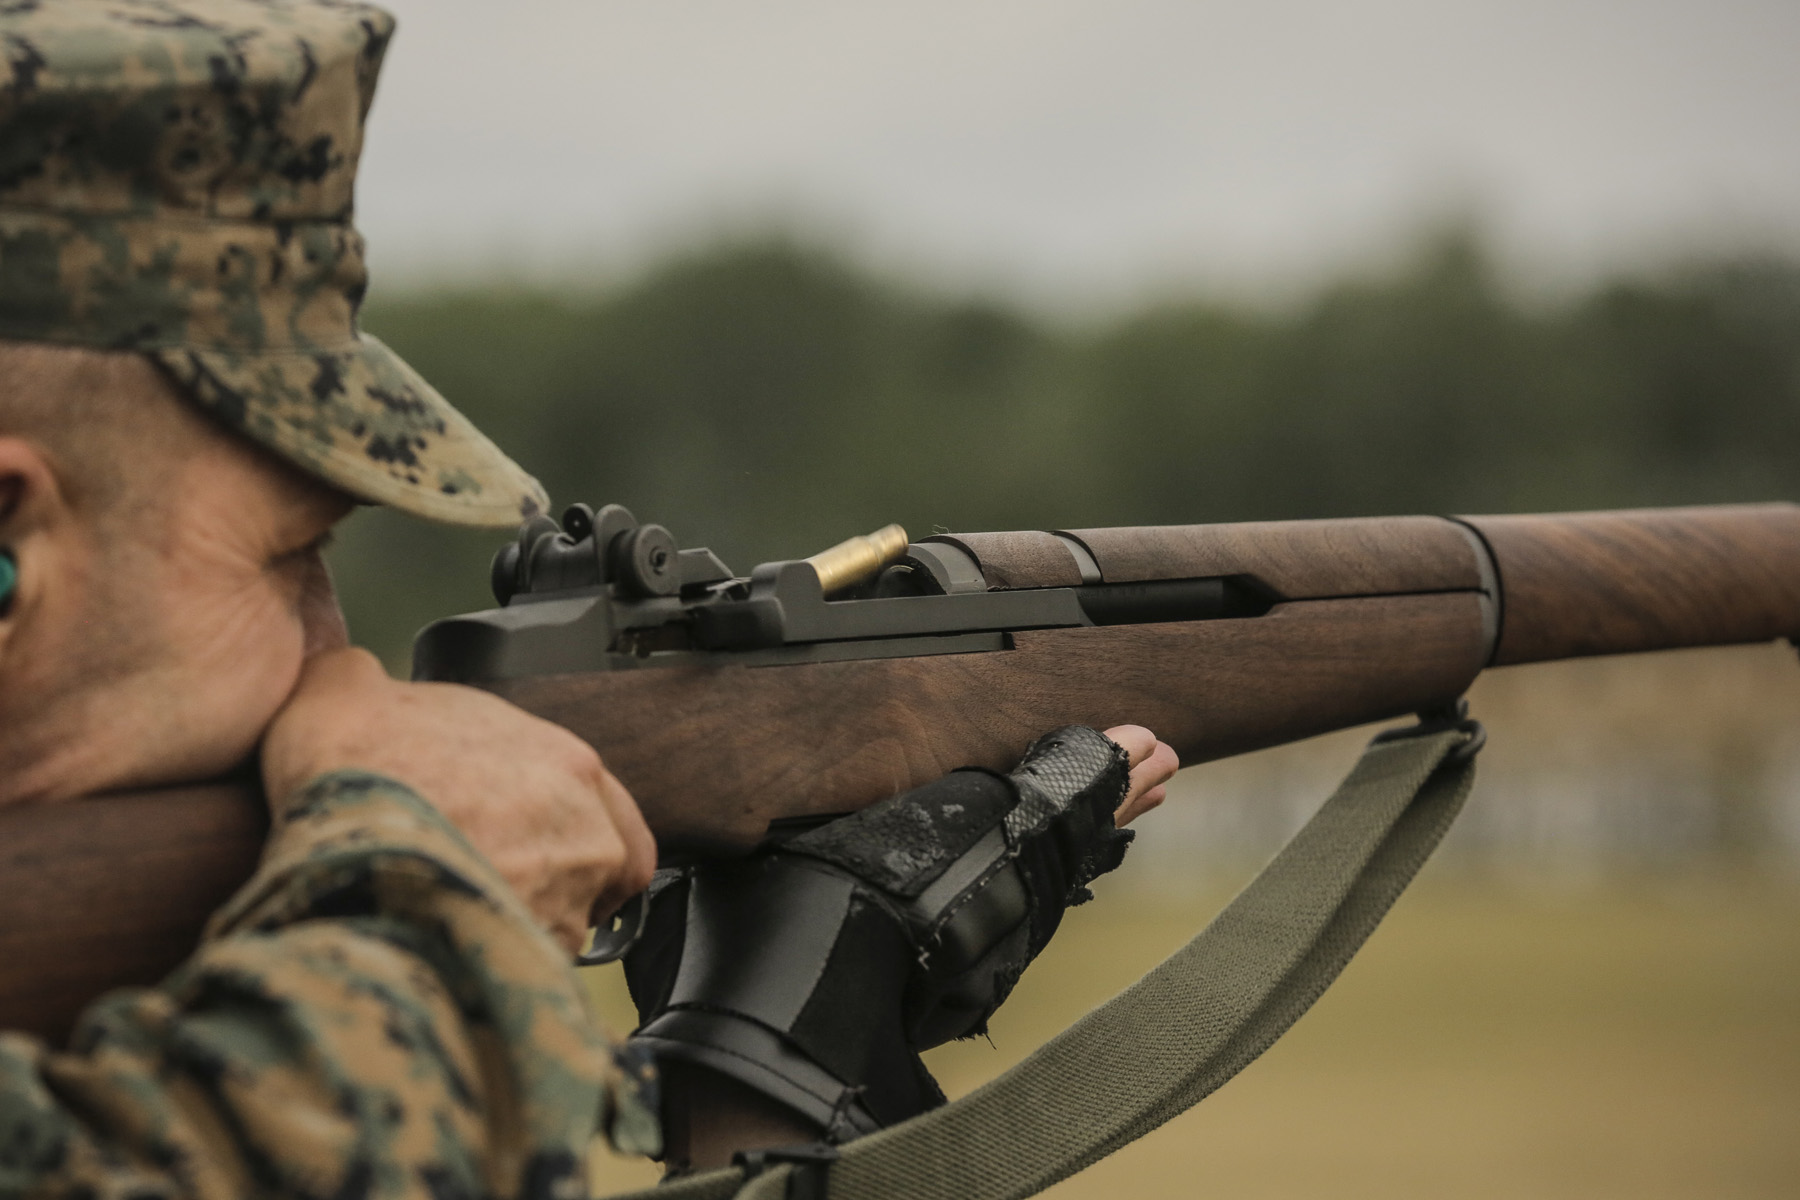 How To Get A Historic M1 Rifle And Other Military Surplus